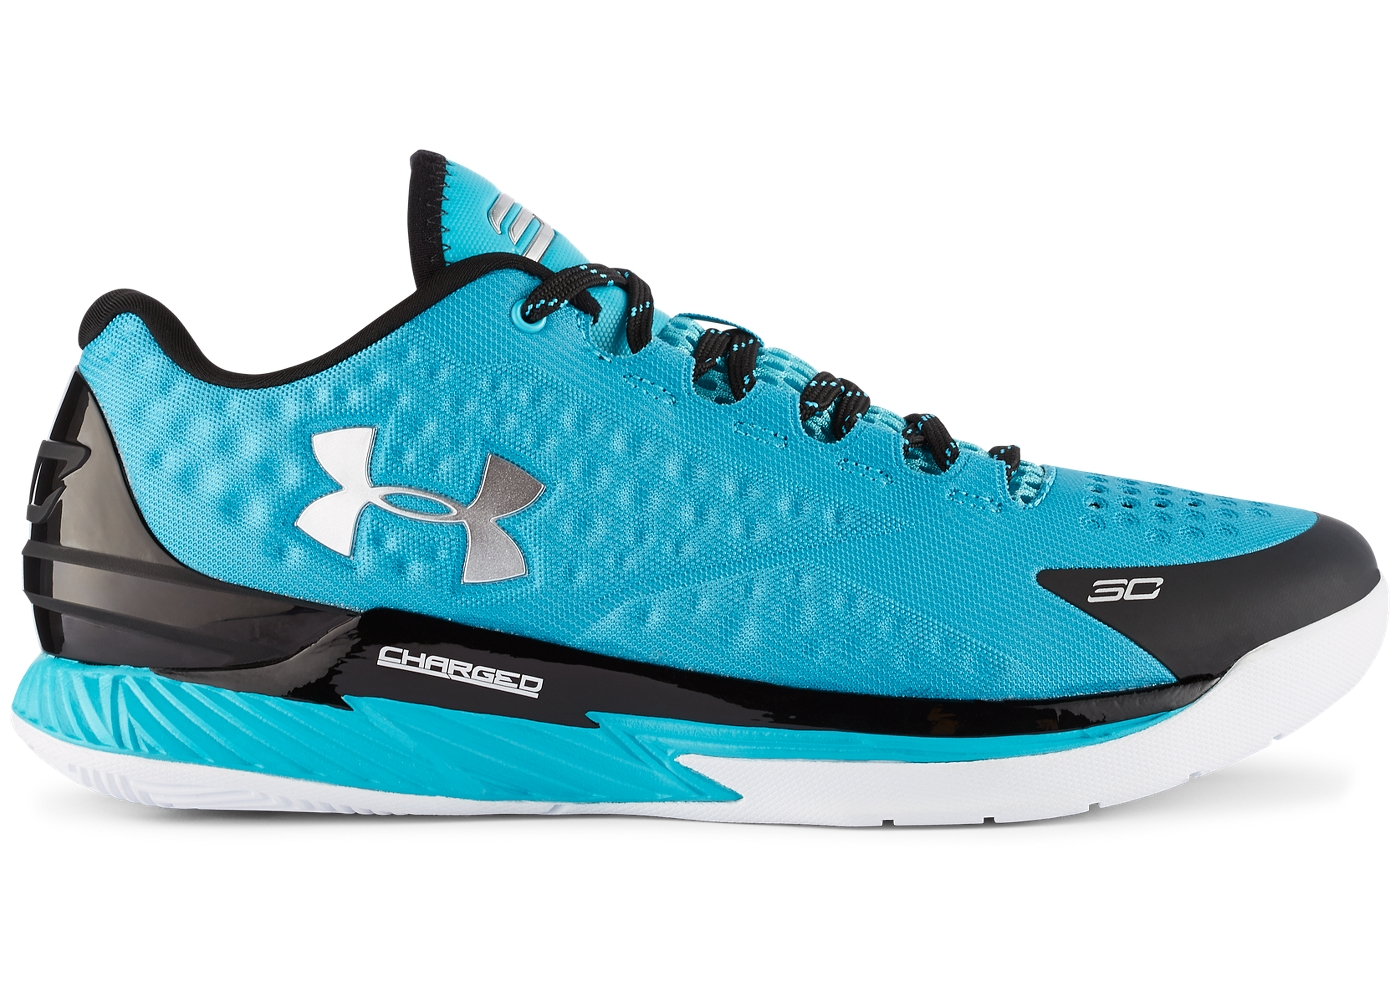 Discount Curry Shoes Men Cheap Under Armour Steph Curry One Low Panthers Teal Size